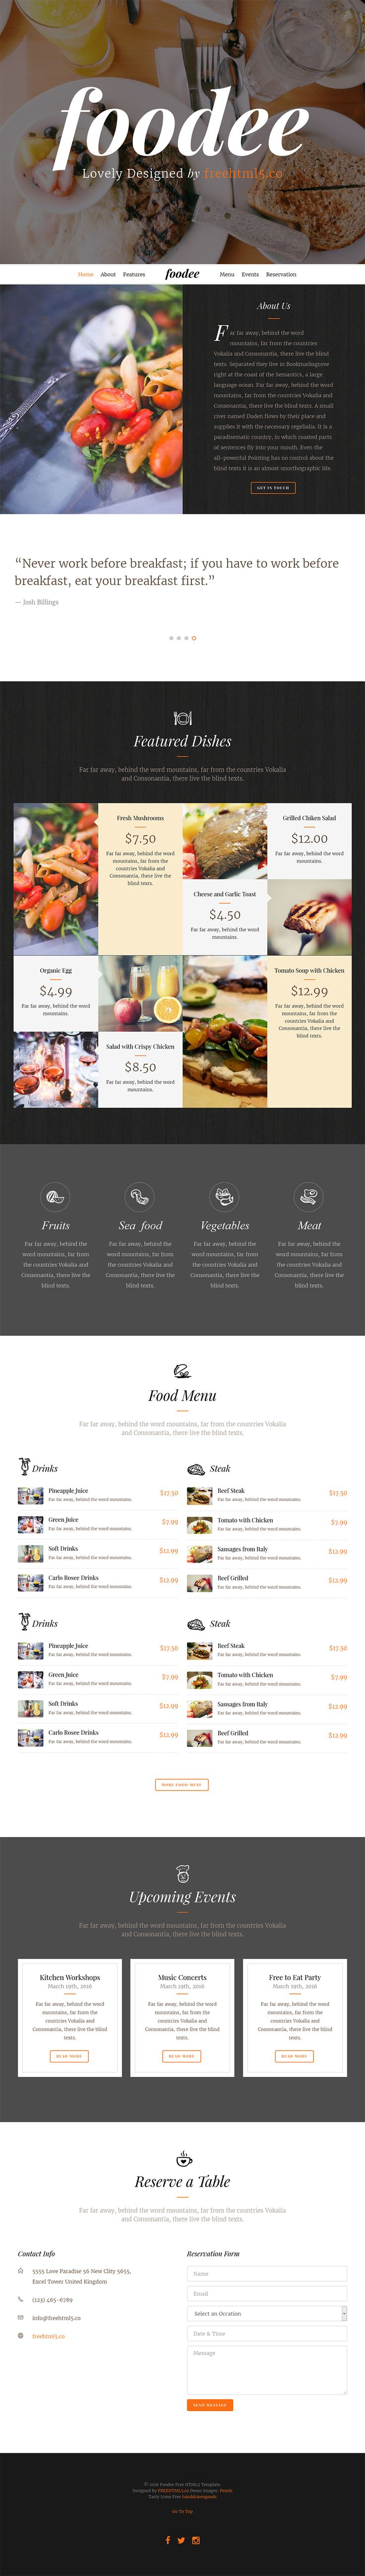 54 best HTML Template Free images on Pinterest | Free html ...